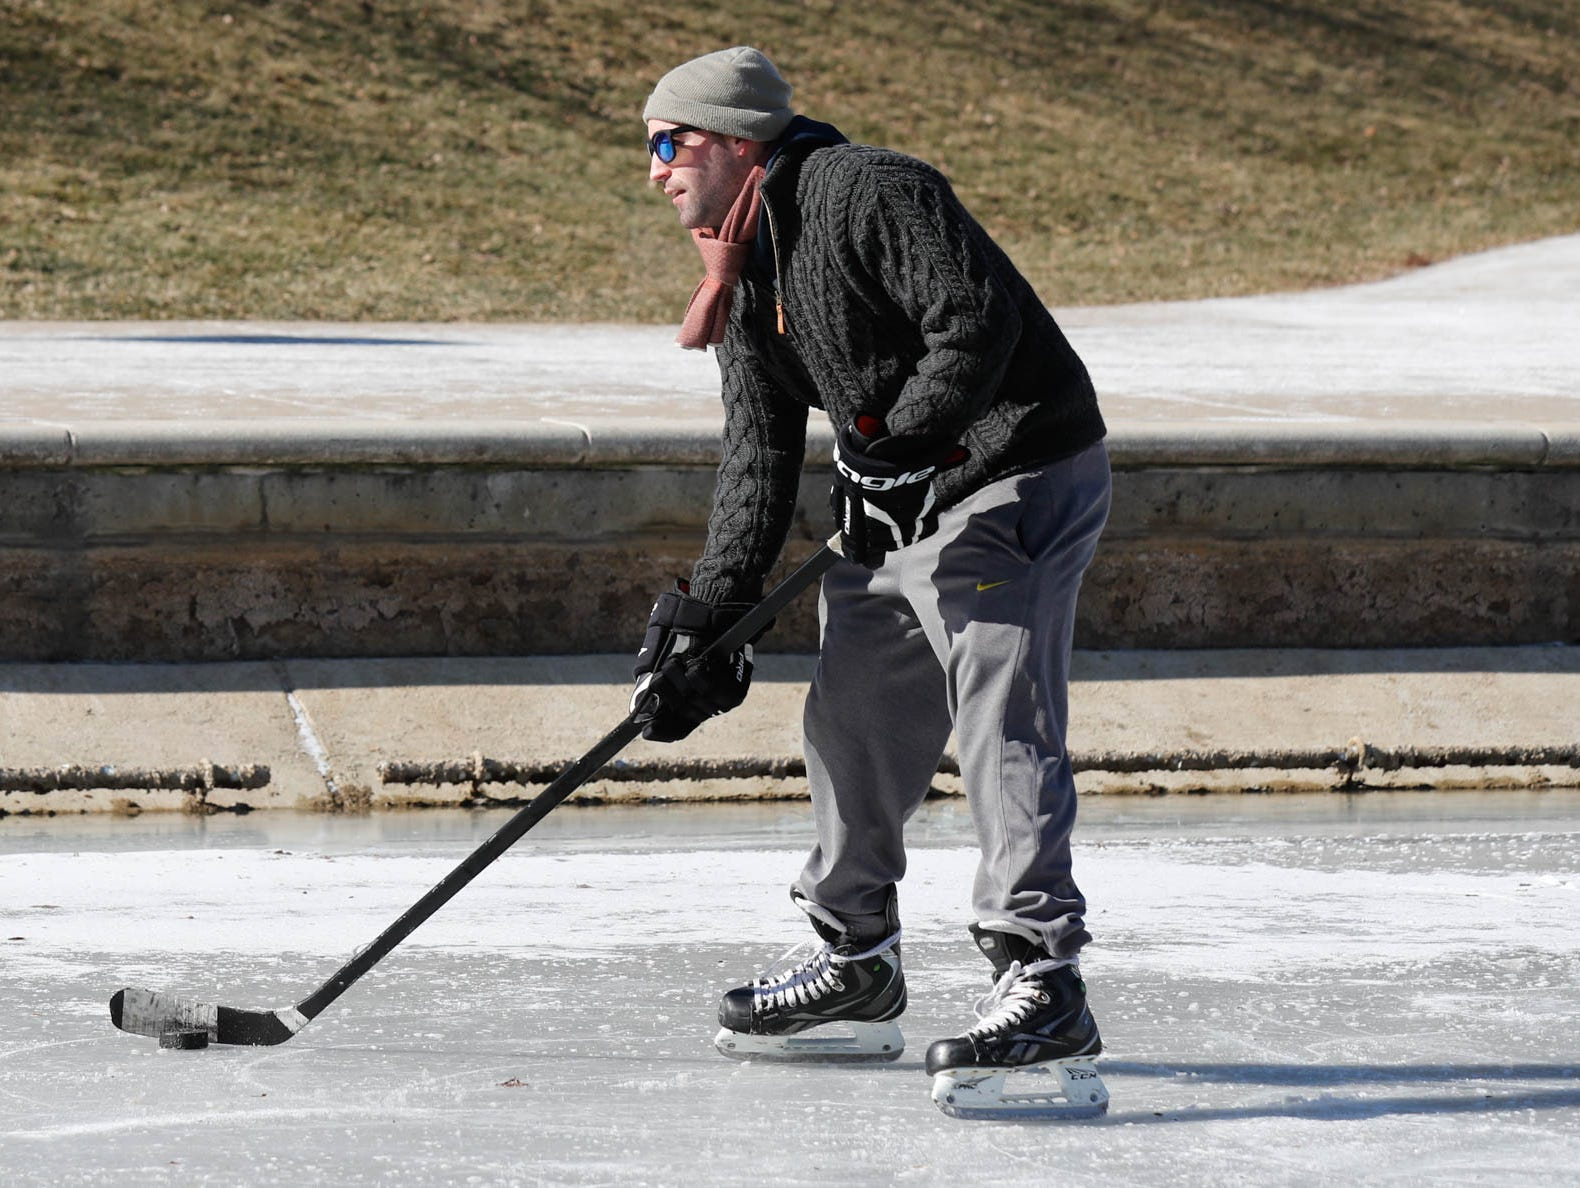 Chase Fairchild, shown here, and friends friends Jackson Richey, and Charlie Hornett get some free ice time to practice hockey skills on the downtown Indianapolis canal on Thursday, Jan. 31, 2019.